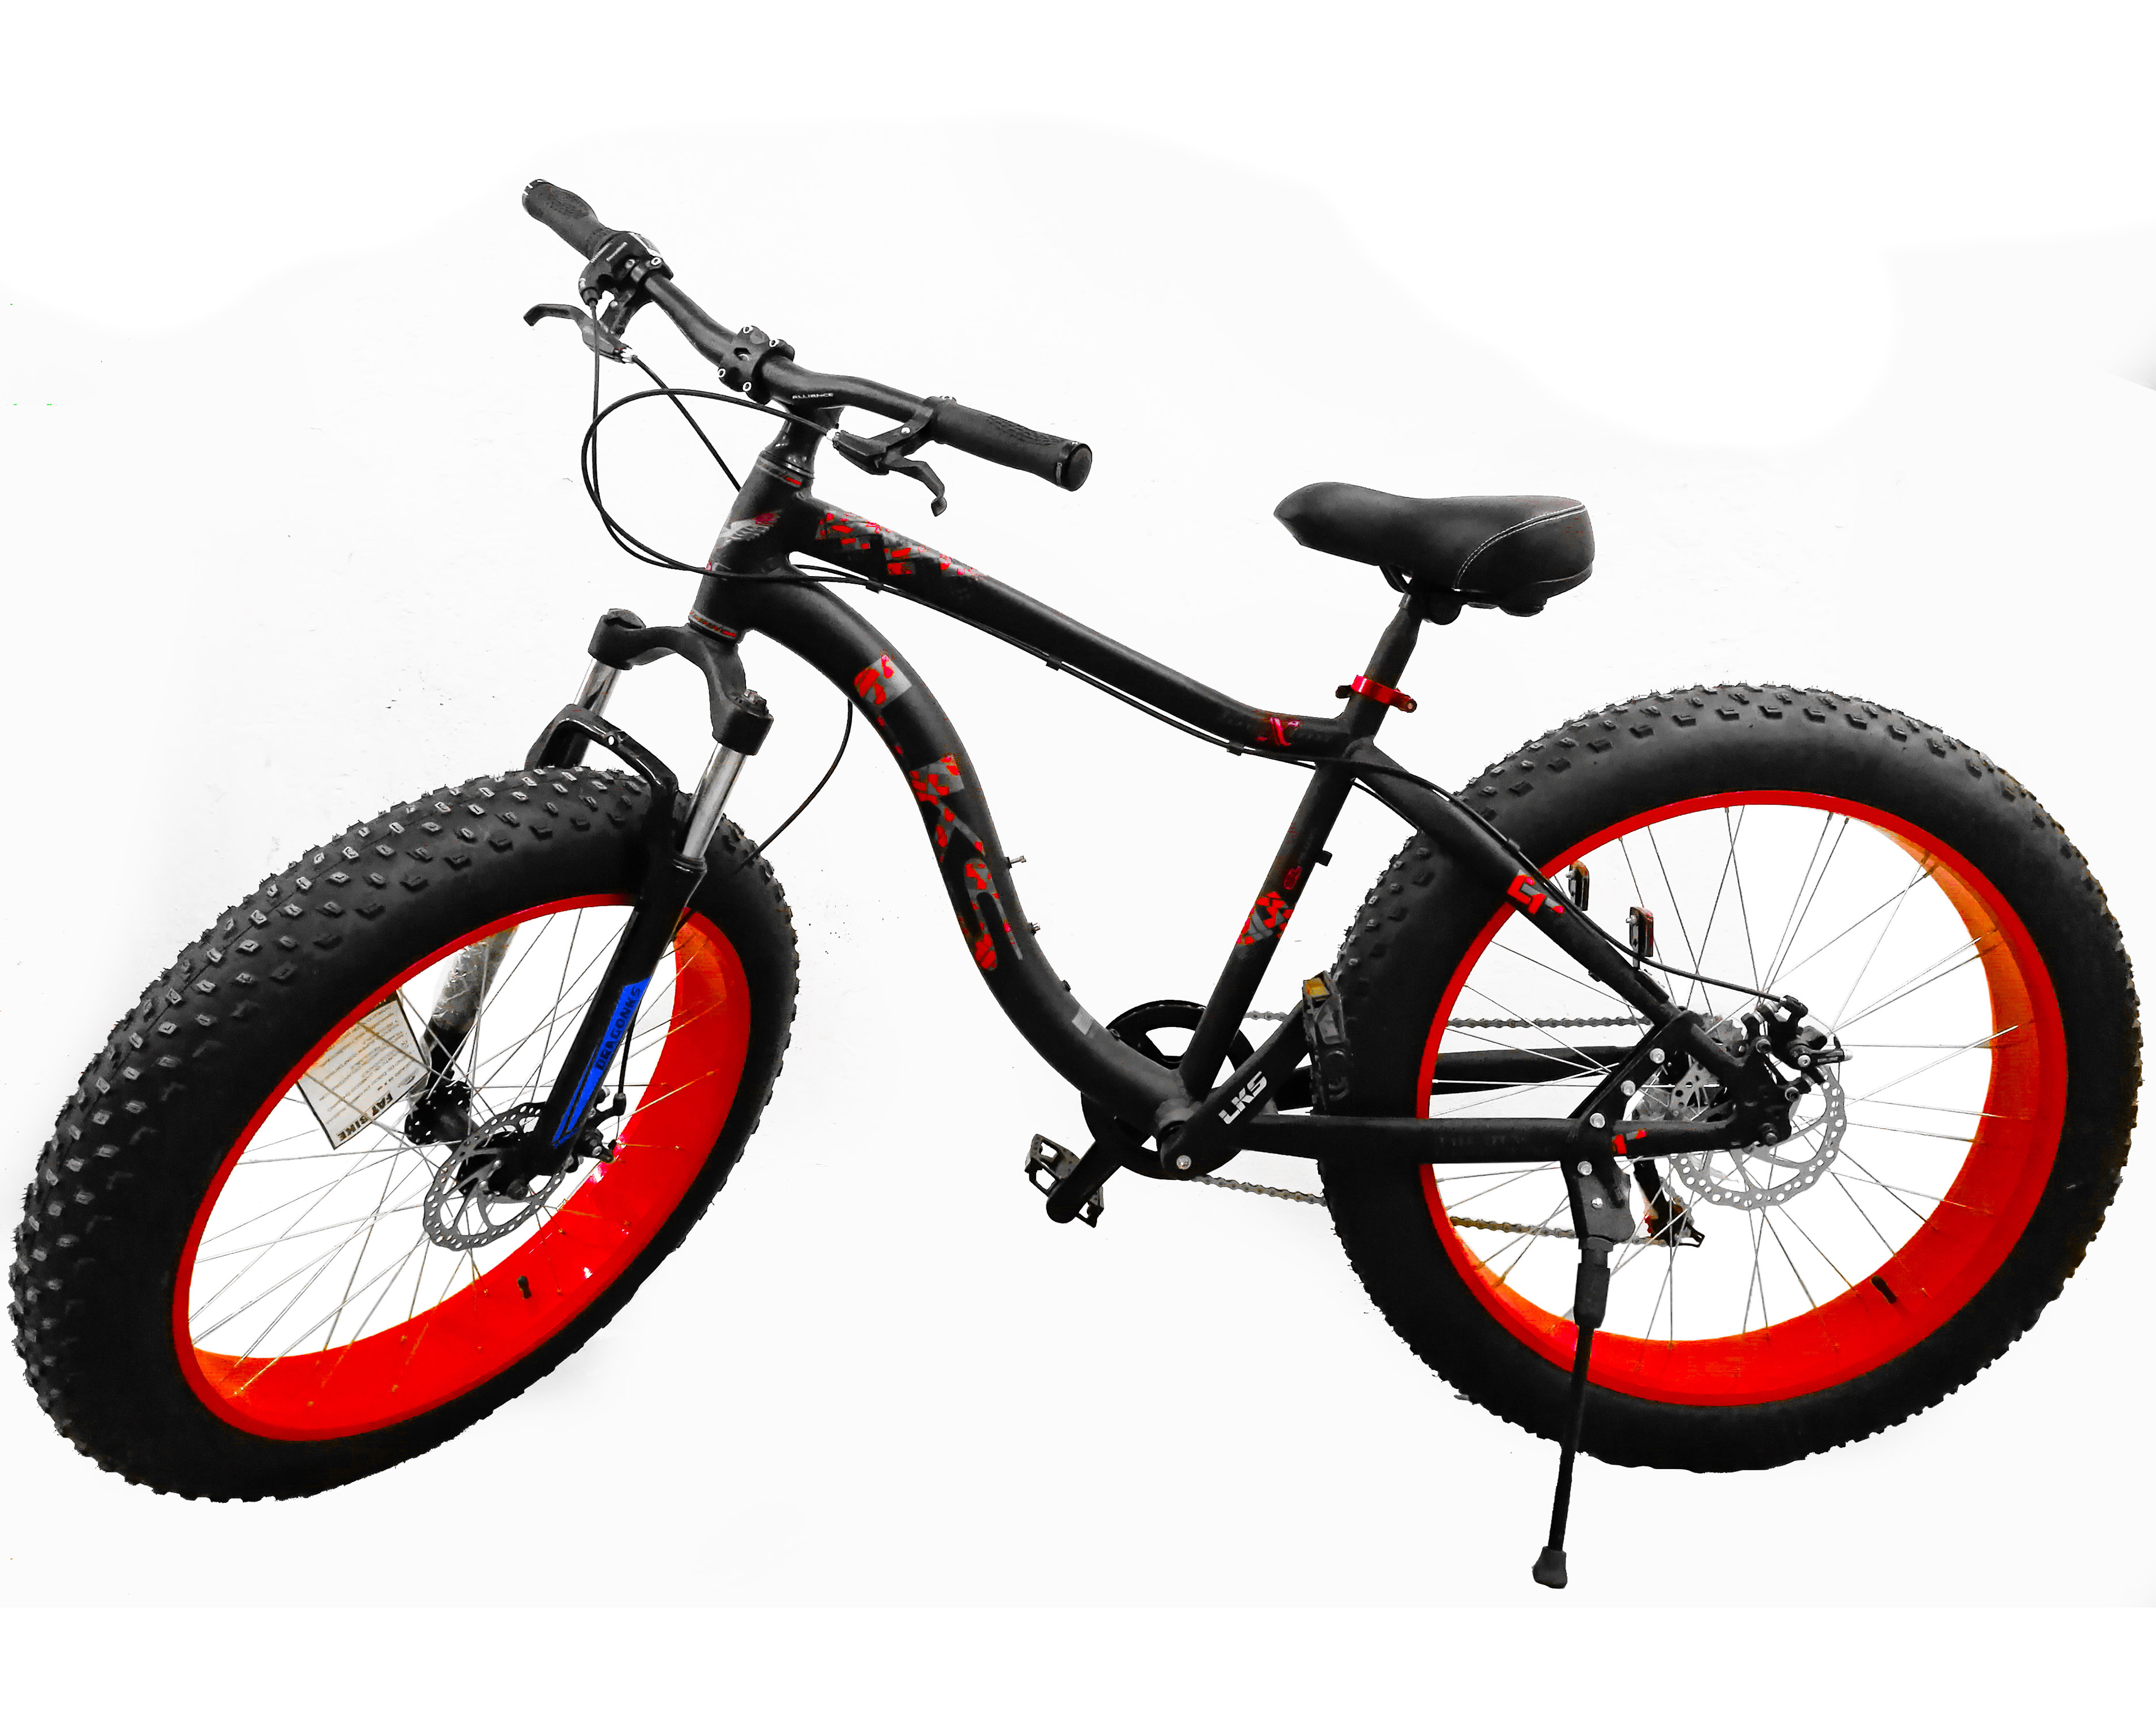 Bicicleta Rueda Ancha Fat Bike Rodado 26